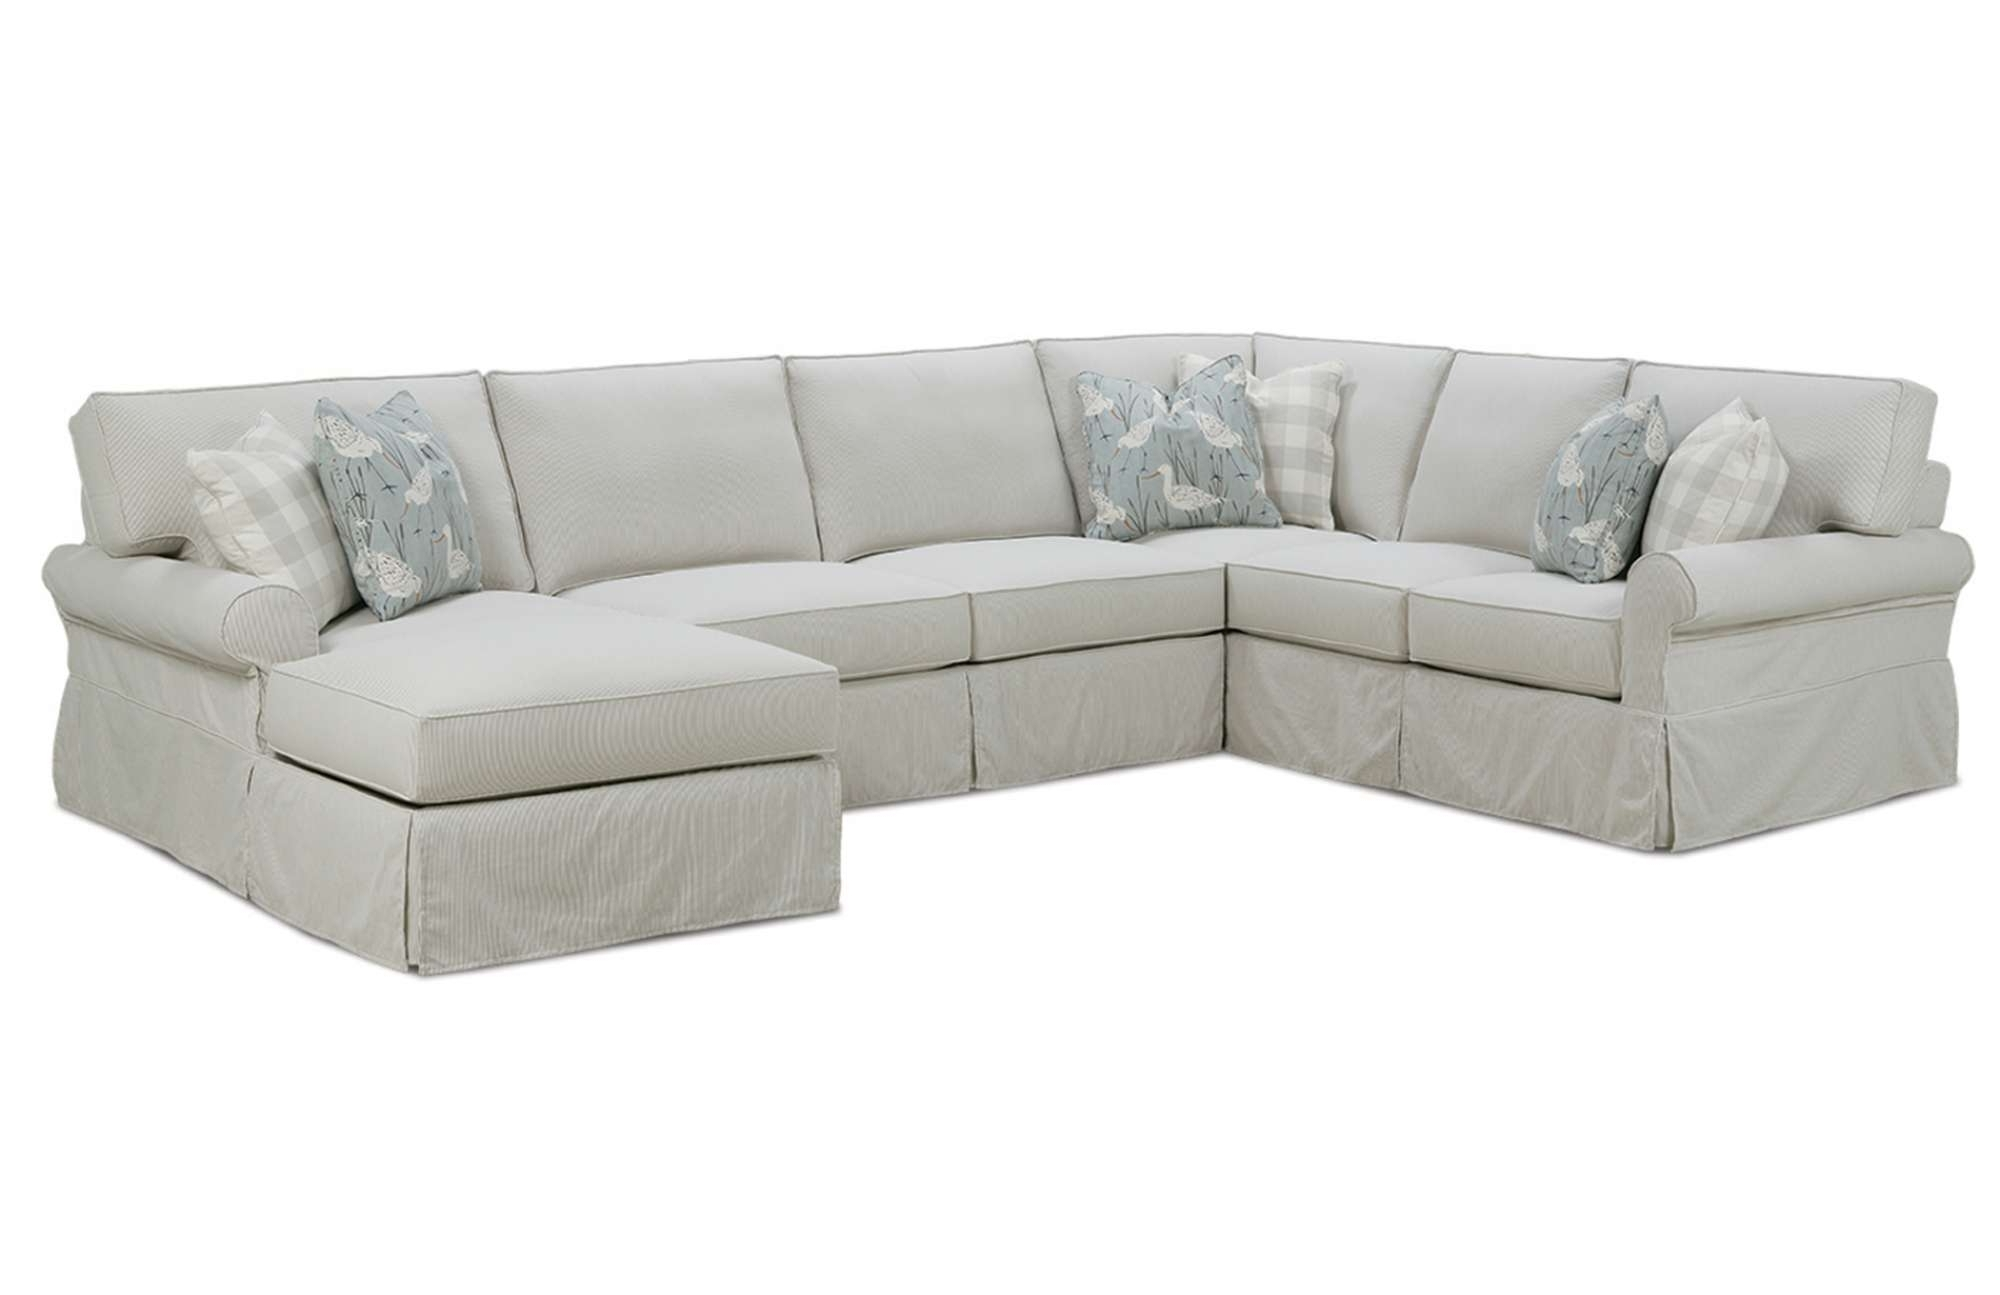 Furniture Row Sectional Sofas Intended For Current Easton Slipcover Sectionalrowe Furniture (View 5 of 15)